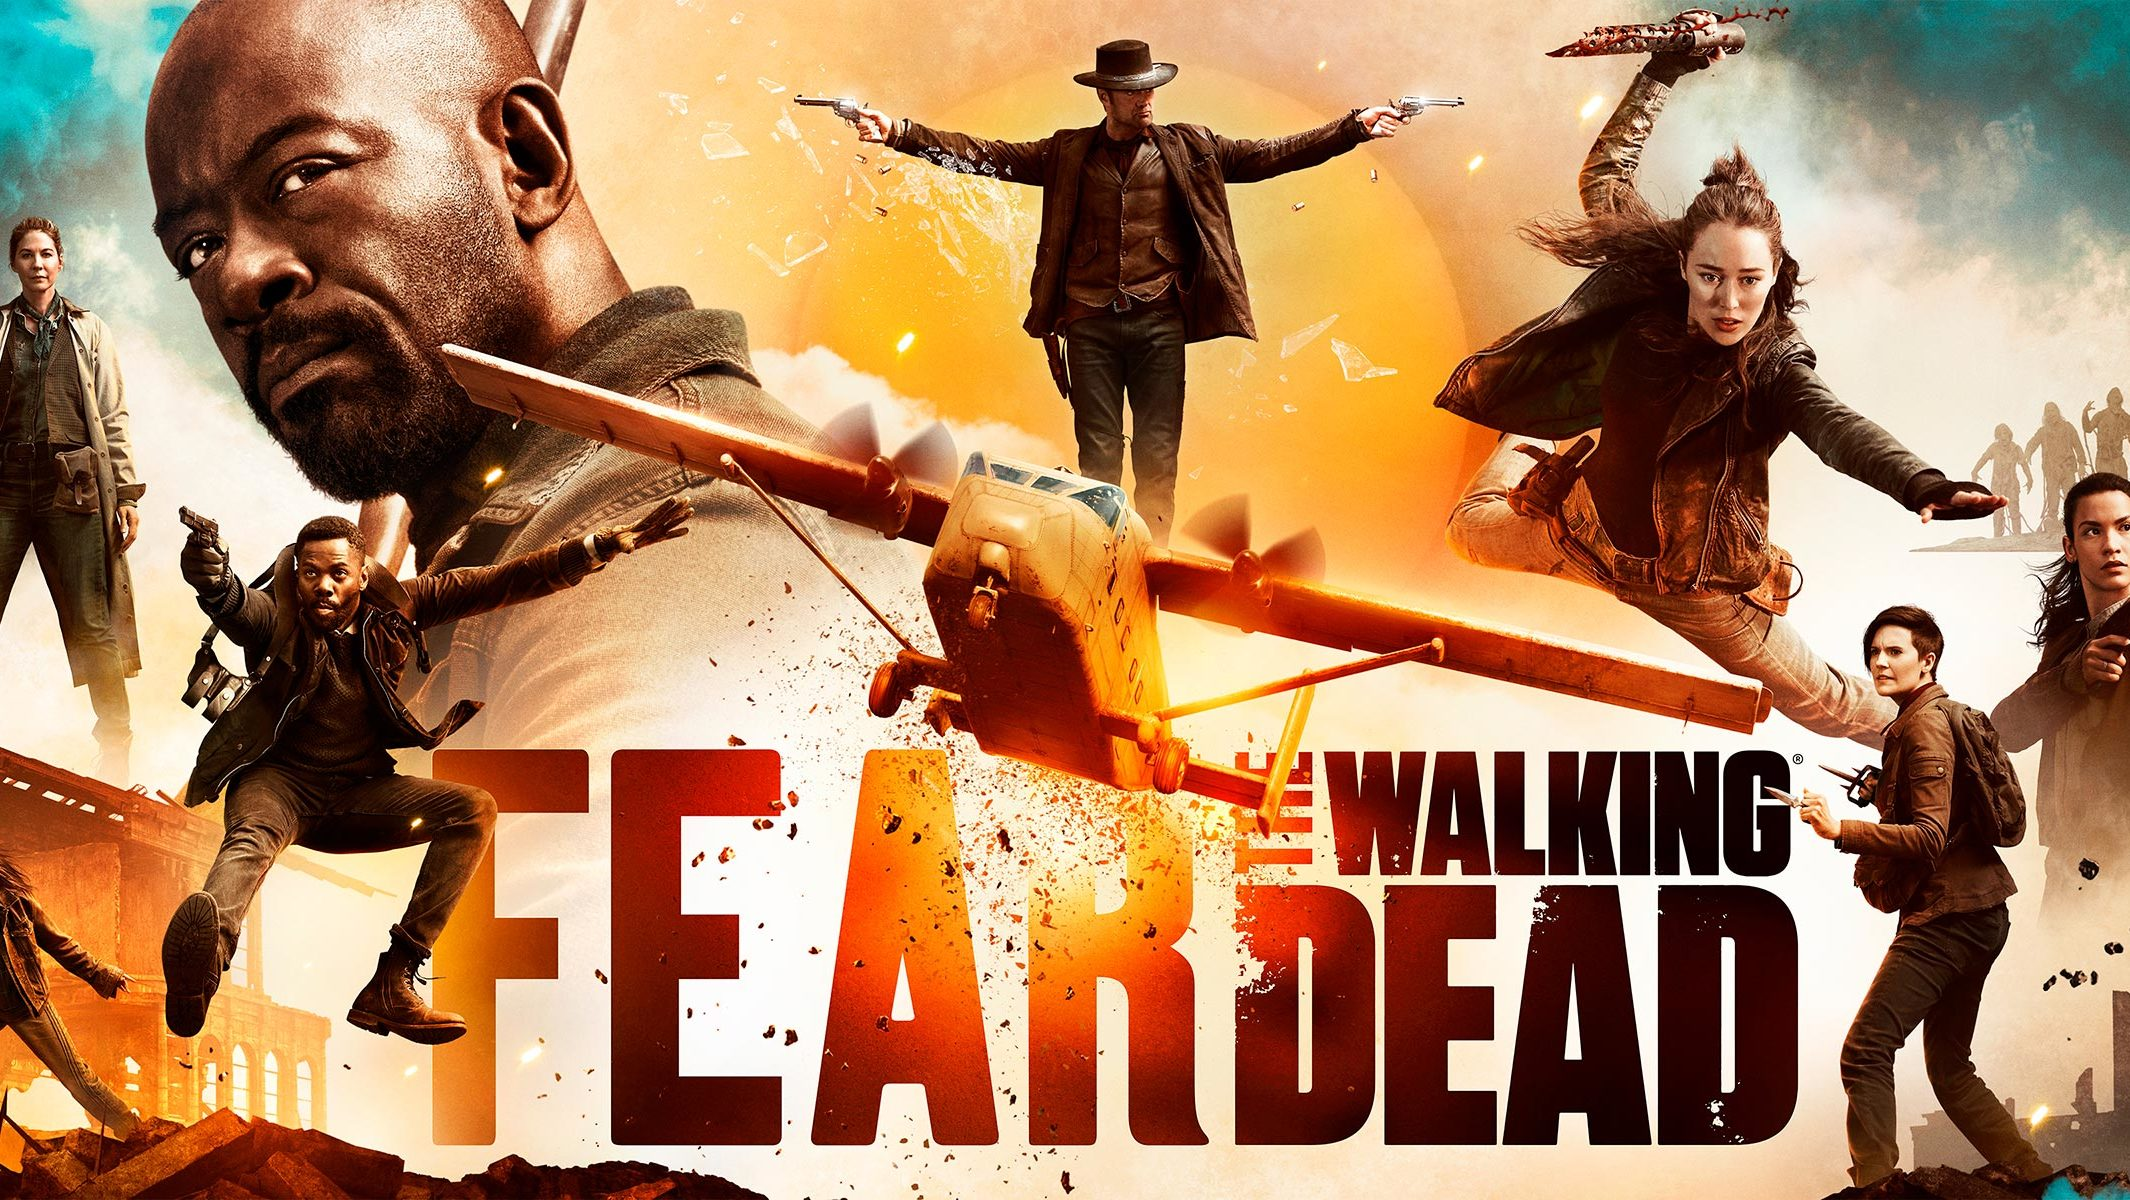 The Walking Dead season 5 air date number of episodes